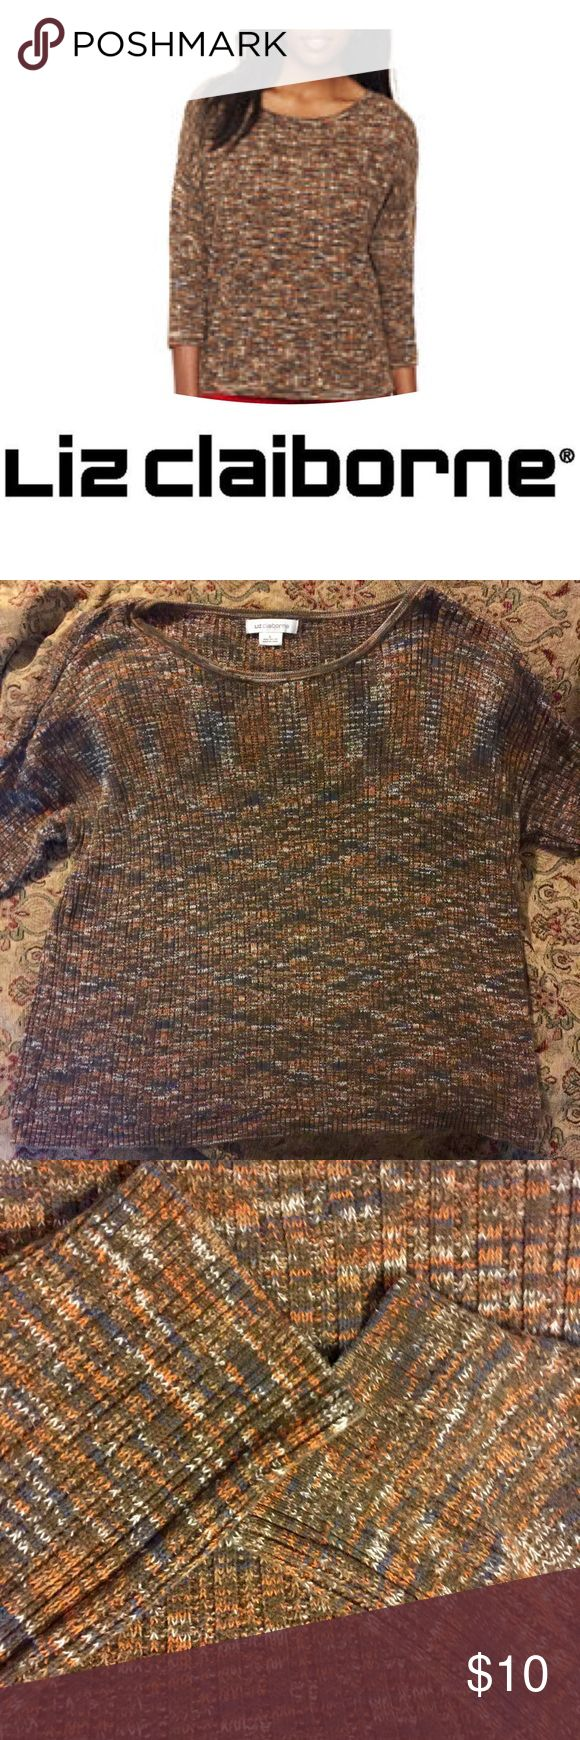 Liz Claiborne Comfy Fall Sweater Liz Claiborne comfortable cotton fall sweater. Size L. Perfect fall colors! Perfect for fall outings, such as a trip to the pumpkin patch! Looks great with jeans. In good used condition. No pulls! Cover photo for reference only. From a smoke free 🚫💨 and pet 🐶🐱🐦 friendly home 🏡. Liz Claiborne Sweaters